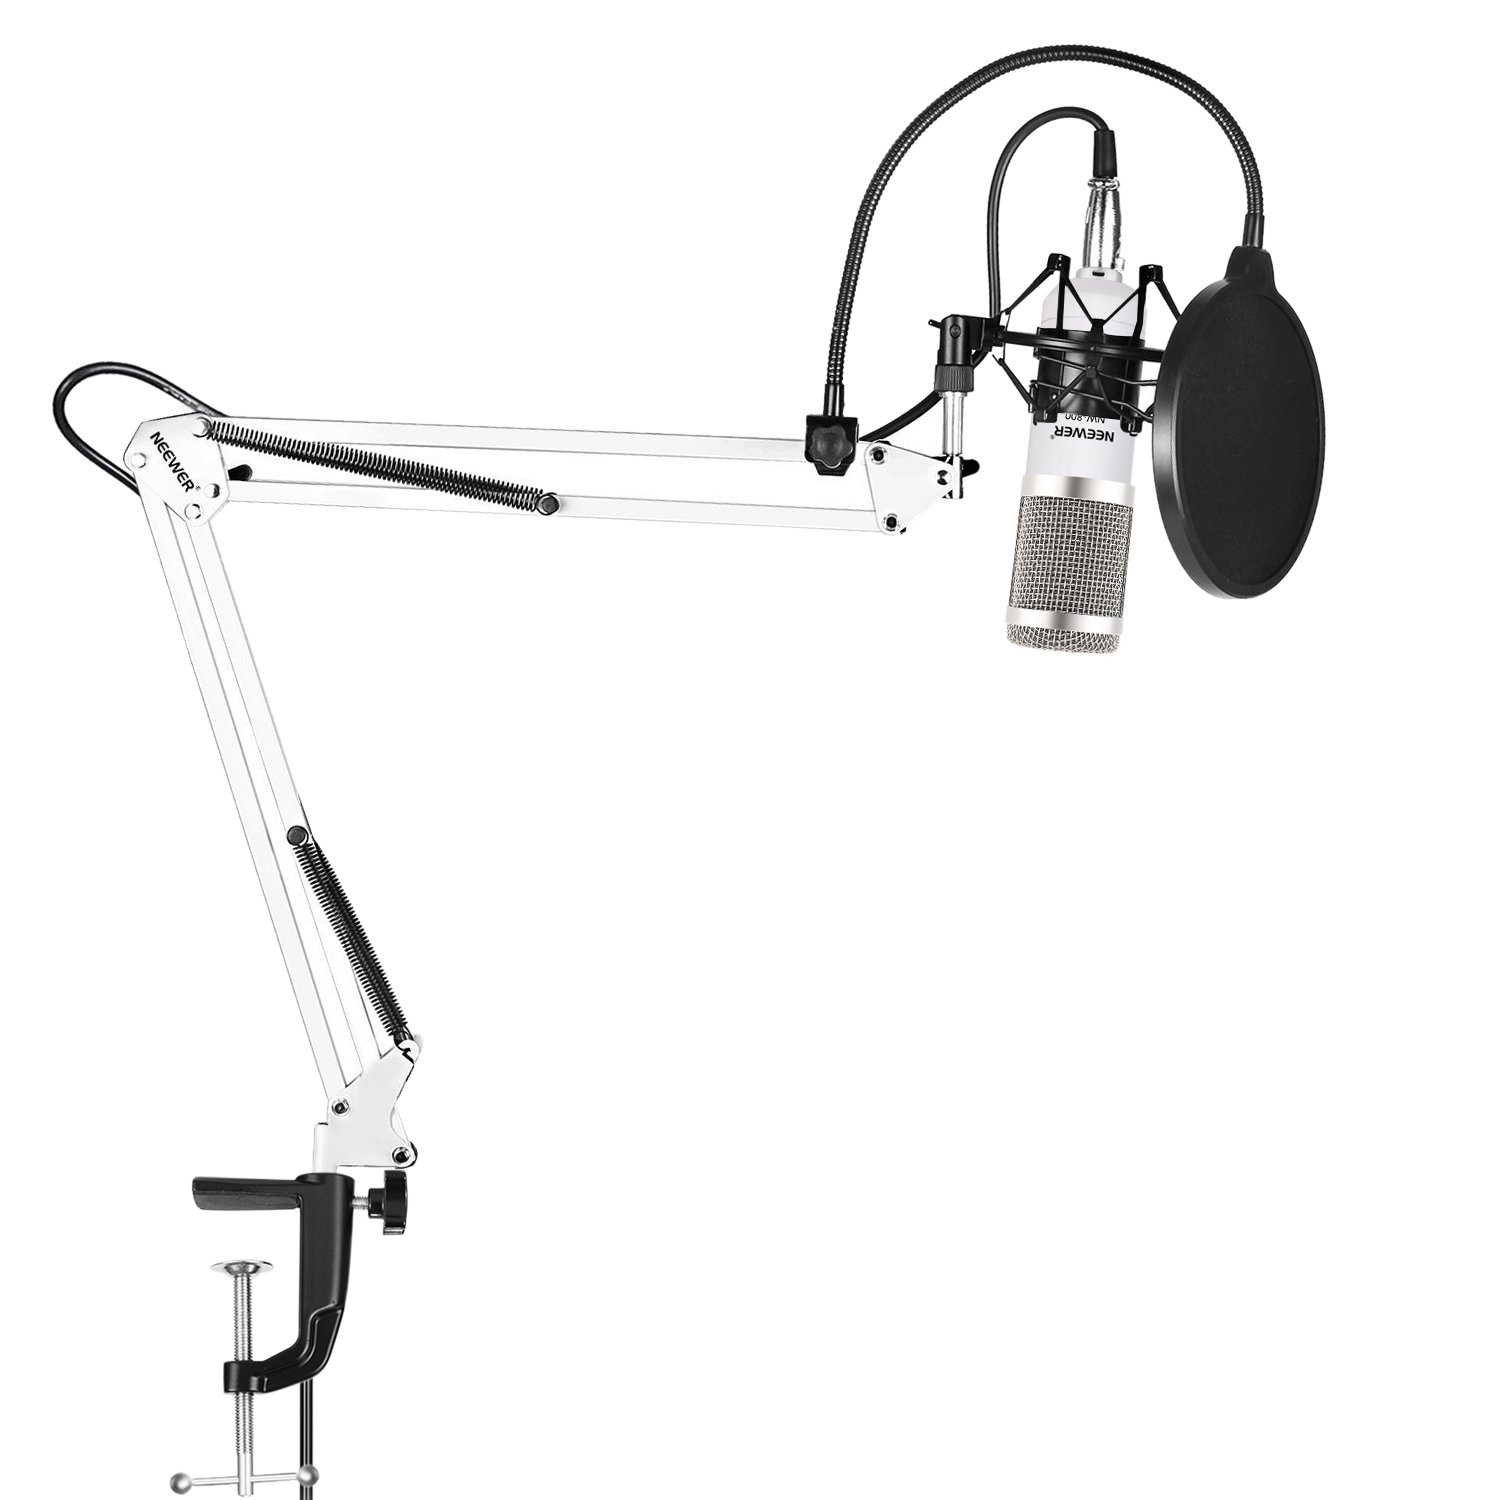 Neewer NW-800 Pro Studio Broadcasting Recording Condenser Mic Kit with NW-35 Adjustable Mic Suspension Scissor Arm Stand with Black Shock Mount and Table Mounting Clamp, Pop Filter(White and Silver)